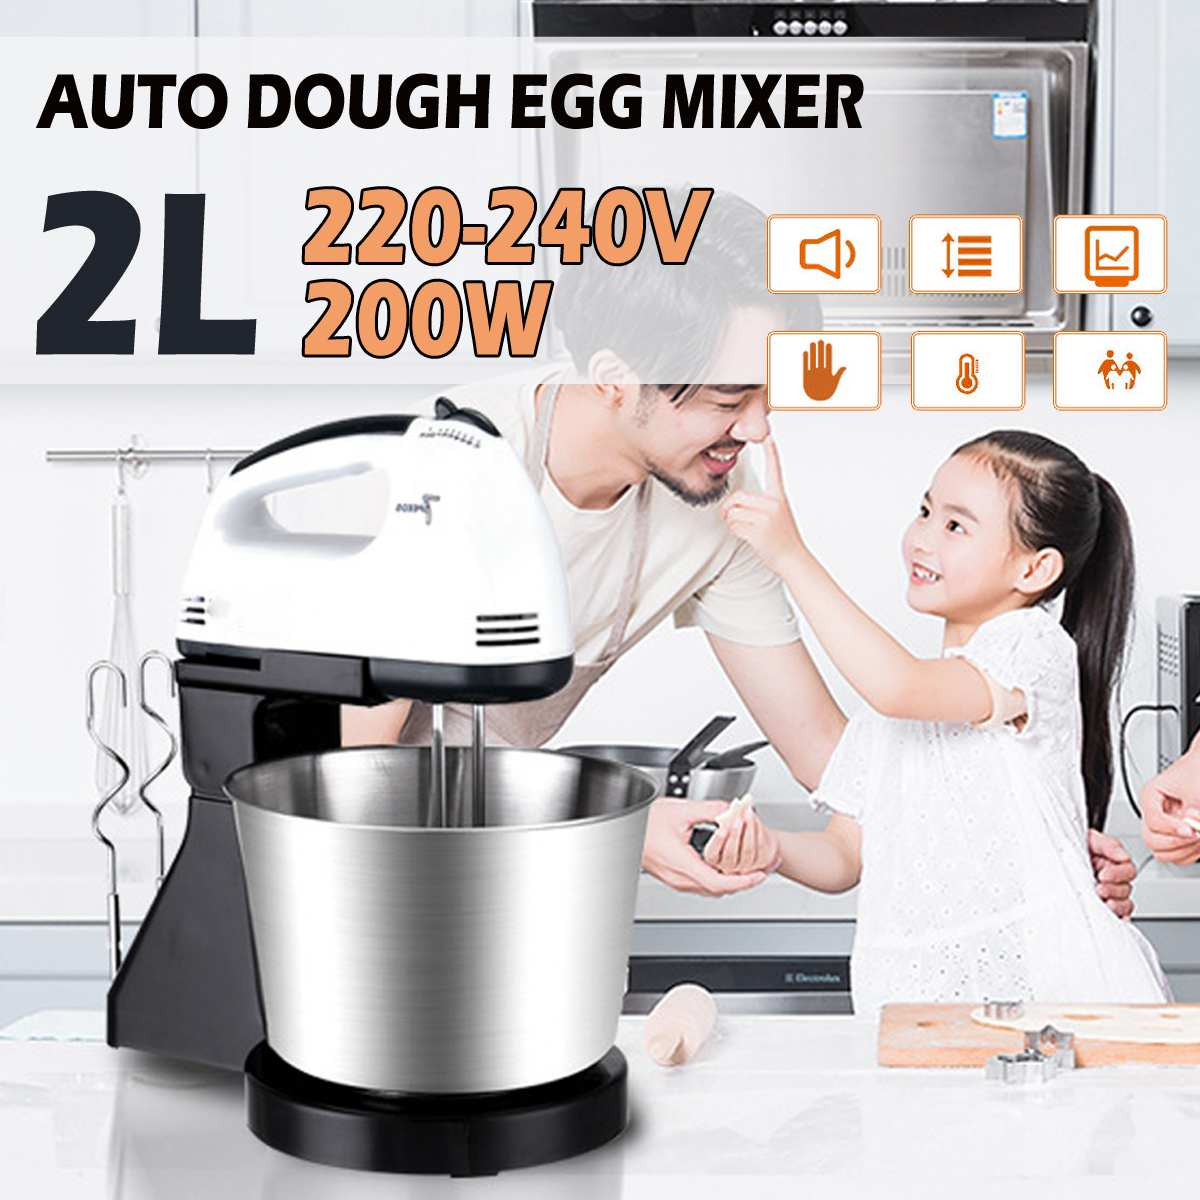 7 Speed Electric Food Mixer 2L Stainless Steel Bowl Whisk Egg Blender Dough Mixer Bread Cream Maker Machine Kitchen Cooking Tool